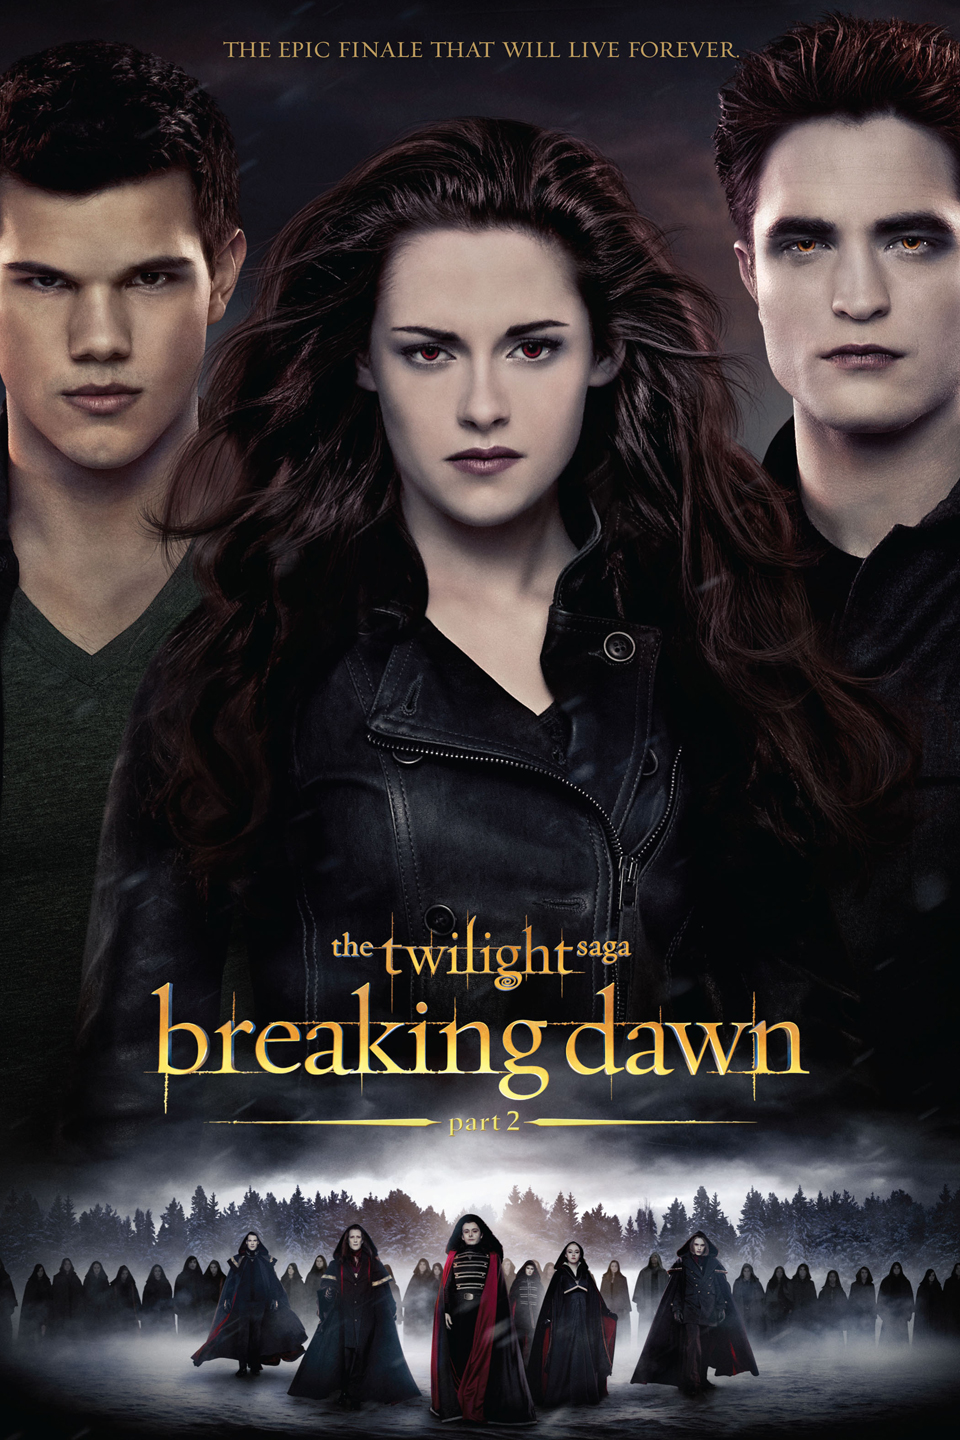 The Twilight Saga: Breaking Dawn Pt. 2